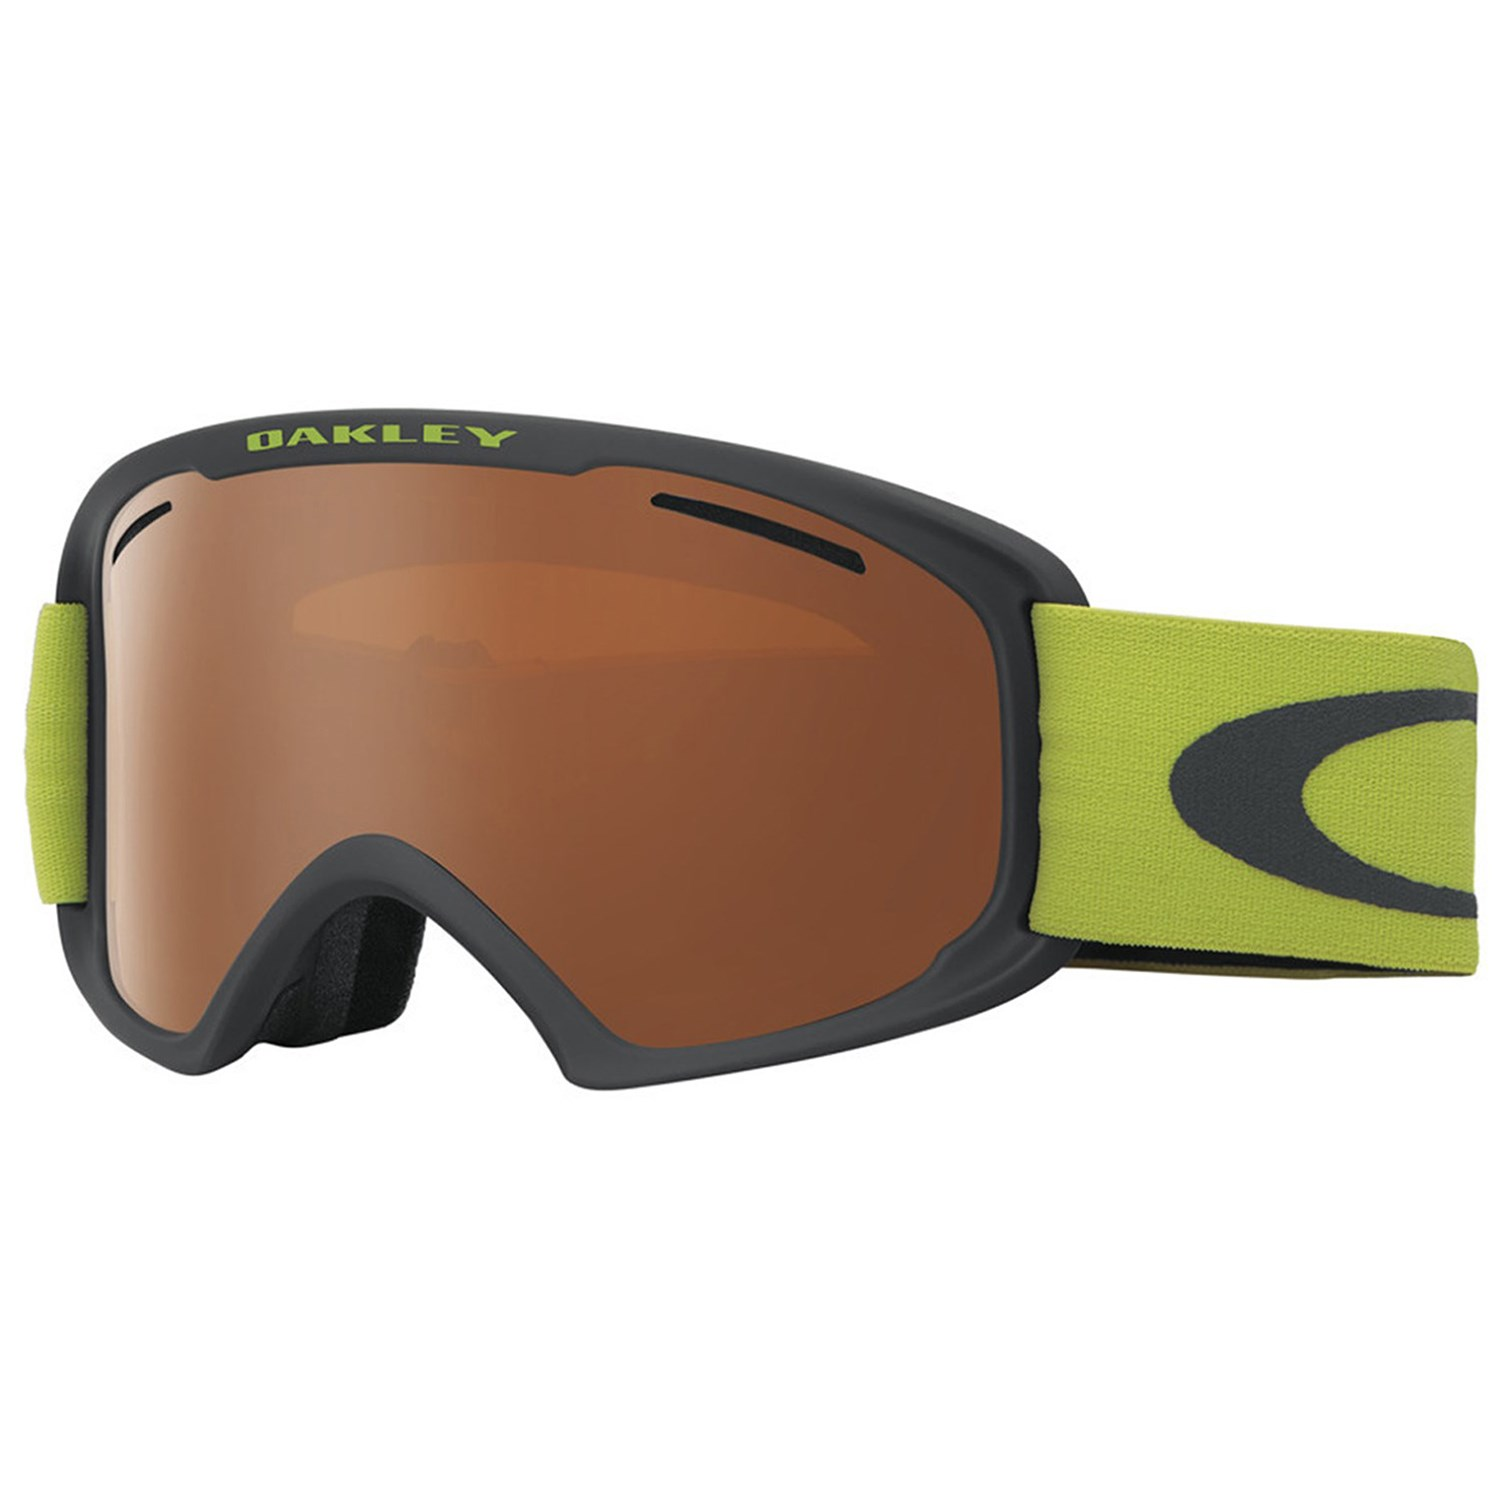 Oakley sunglasses asian fit - Oakley Sunglasses Asian Fit 27